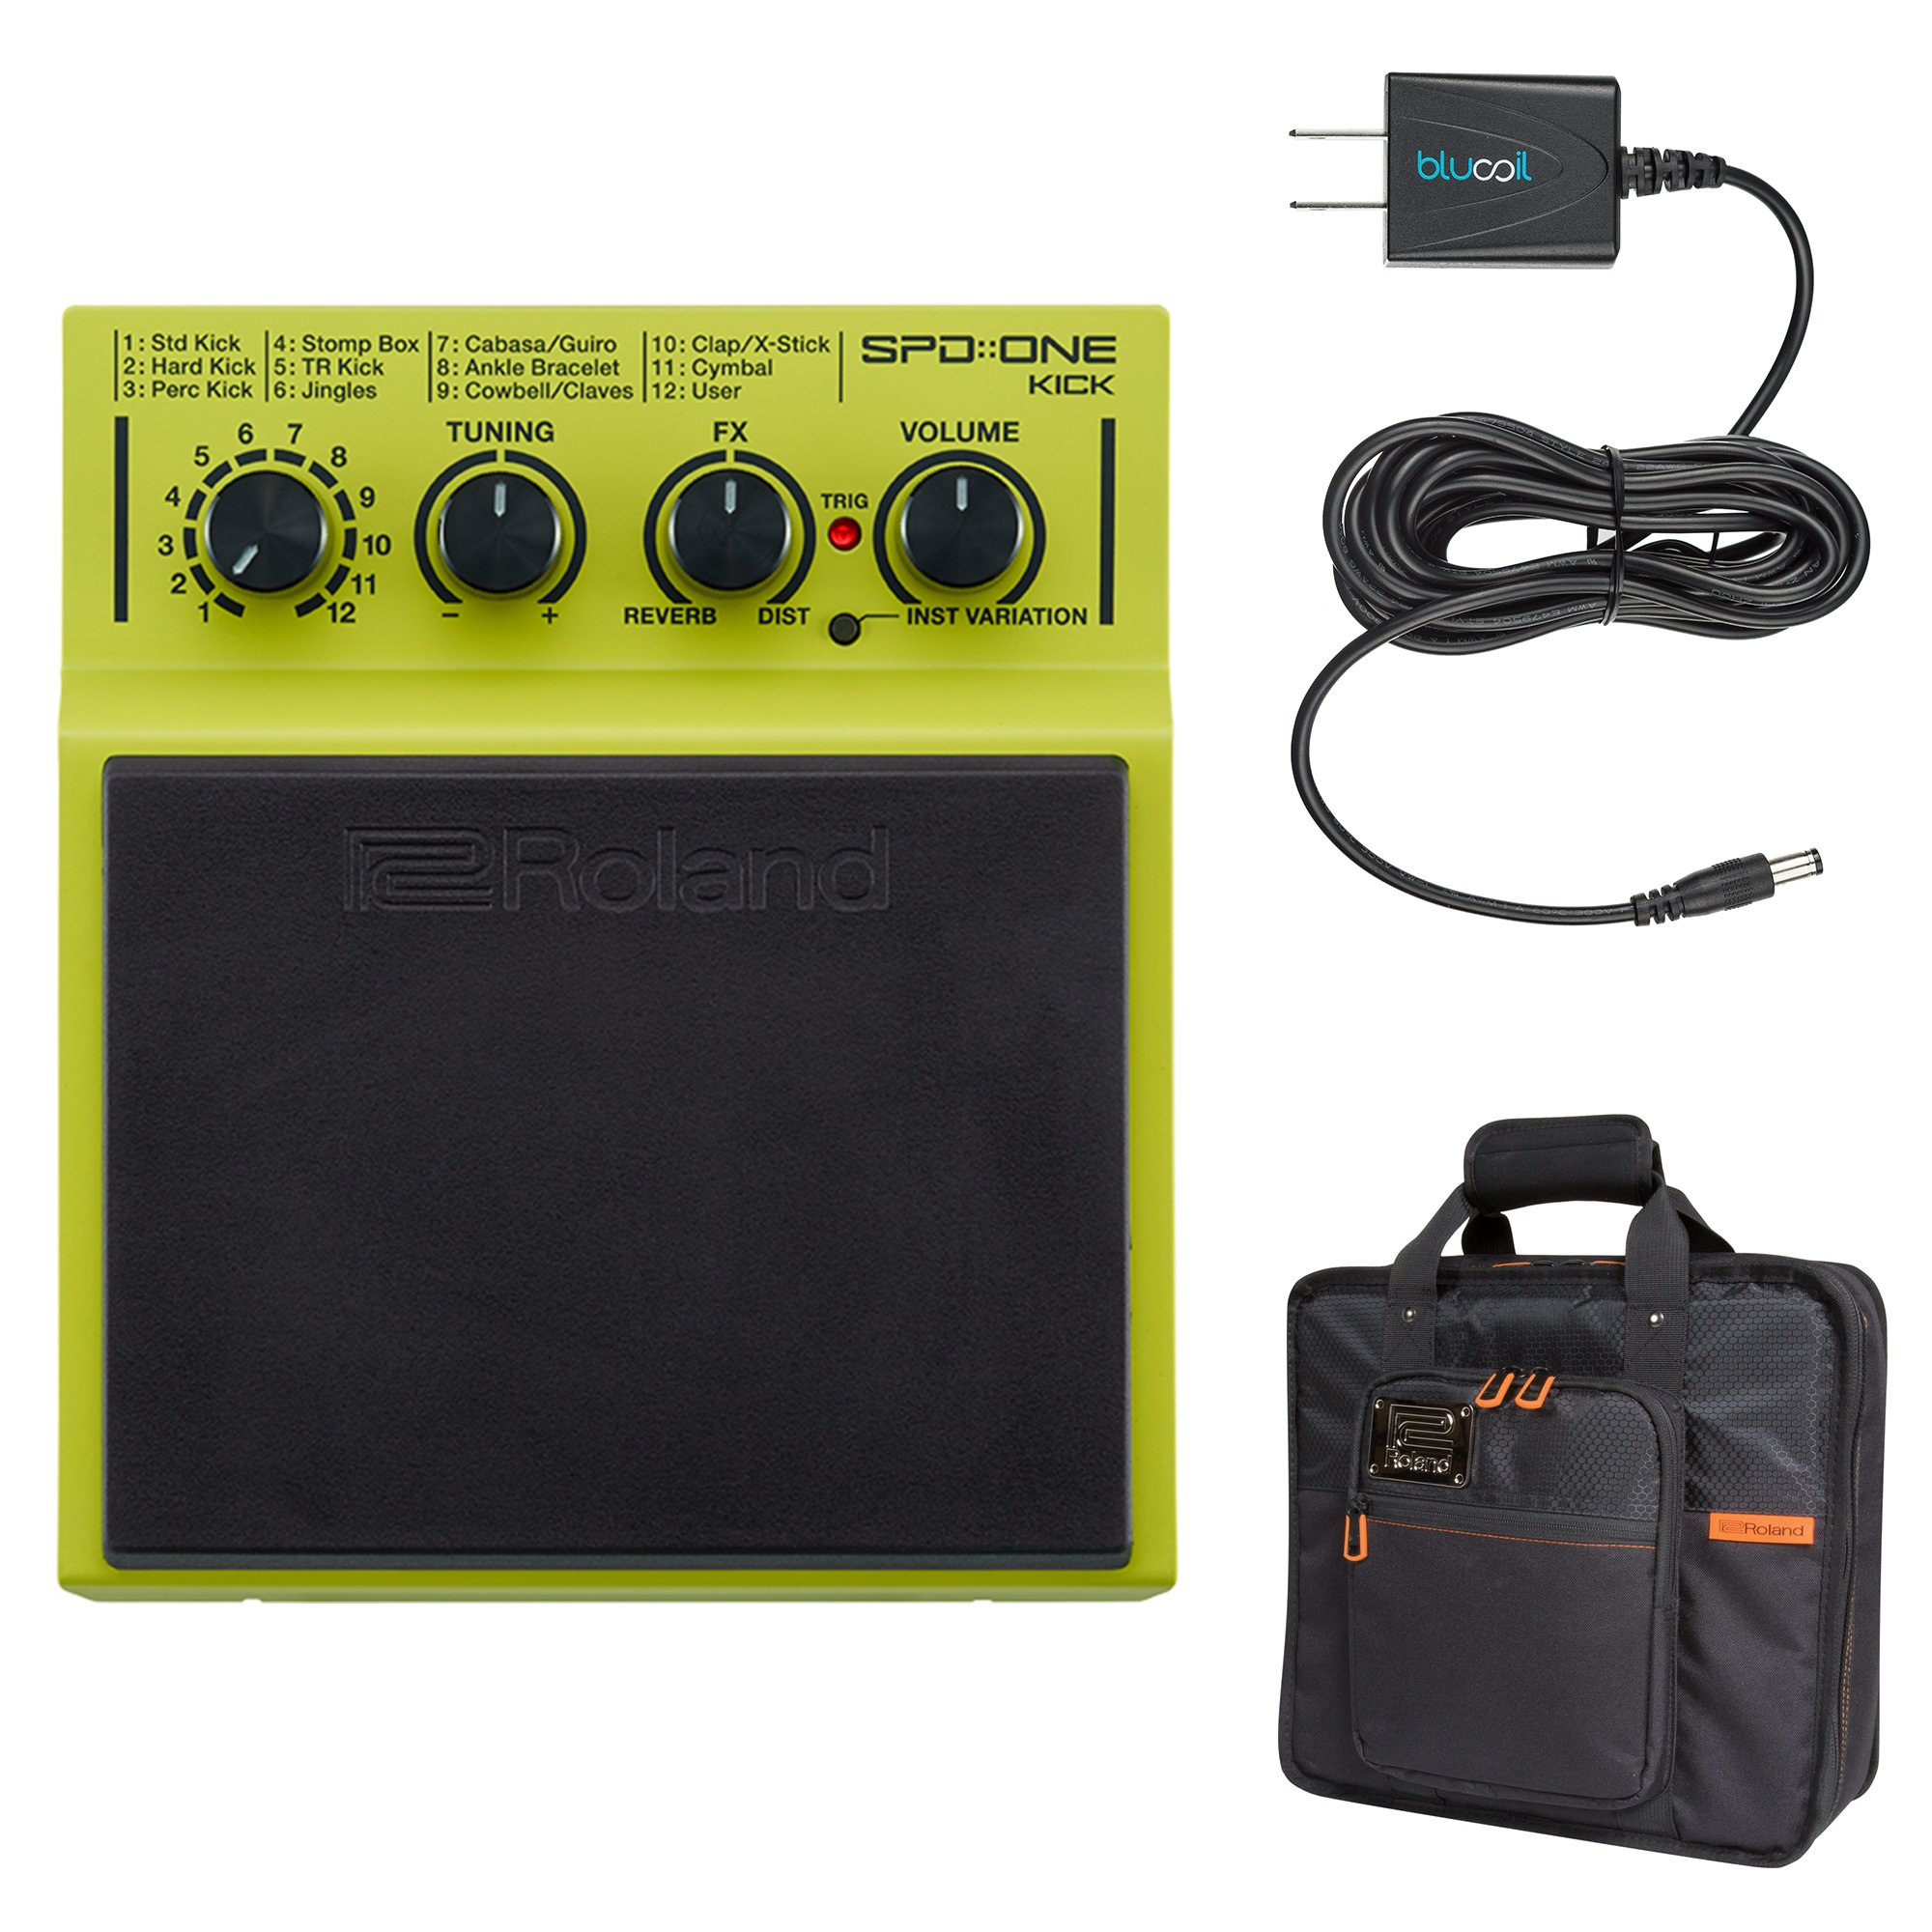 Roland SPD::ONE KICK Drum Trigger Pad Bundle with CB-BSPDSX Instrument Carrying Bag for SPD Drum Pads (Black) and Blucoil Power Supply Slim AC/DC Adapter for 9 Volt DC 670mA